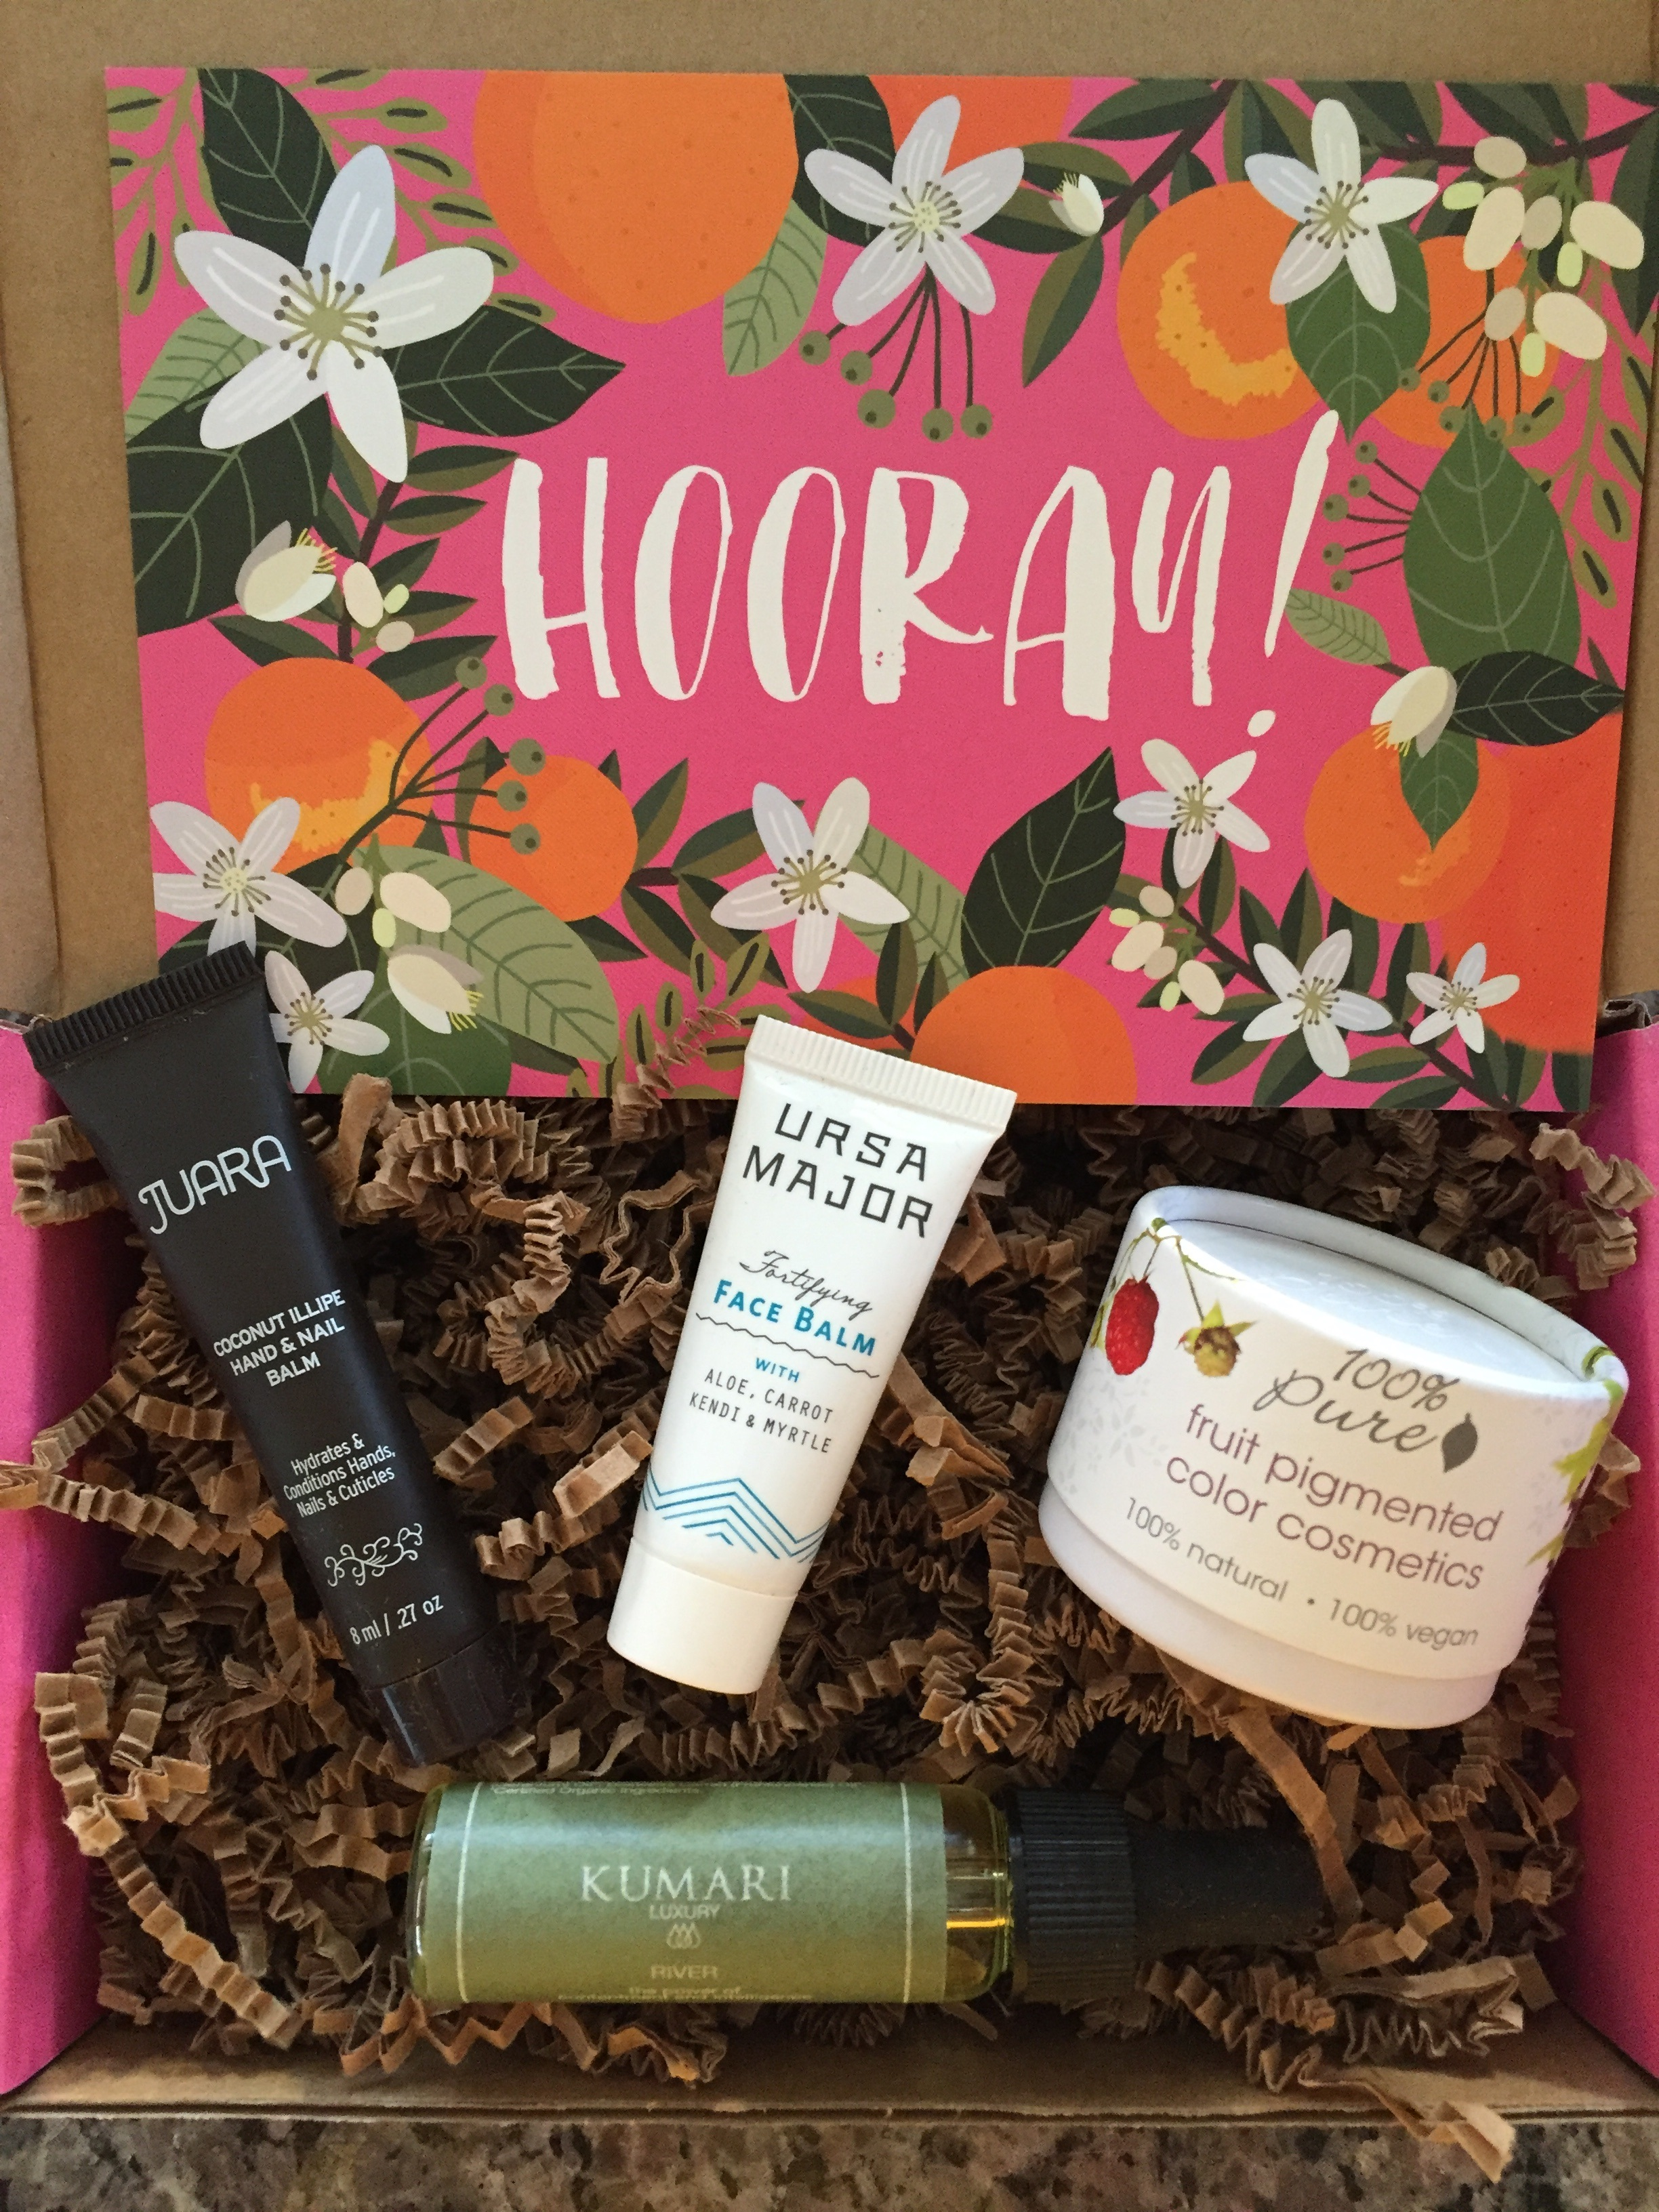 contents of petit vour april 2016 box with hooray! theme and info card